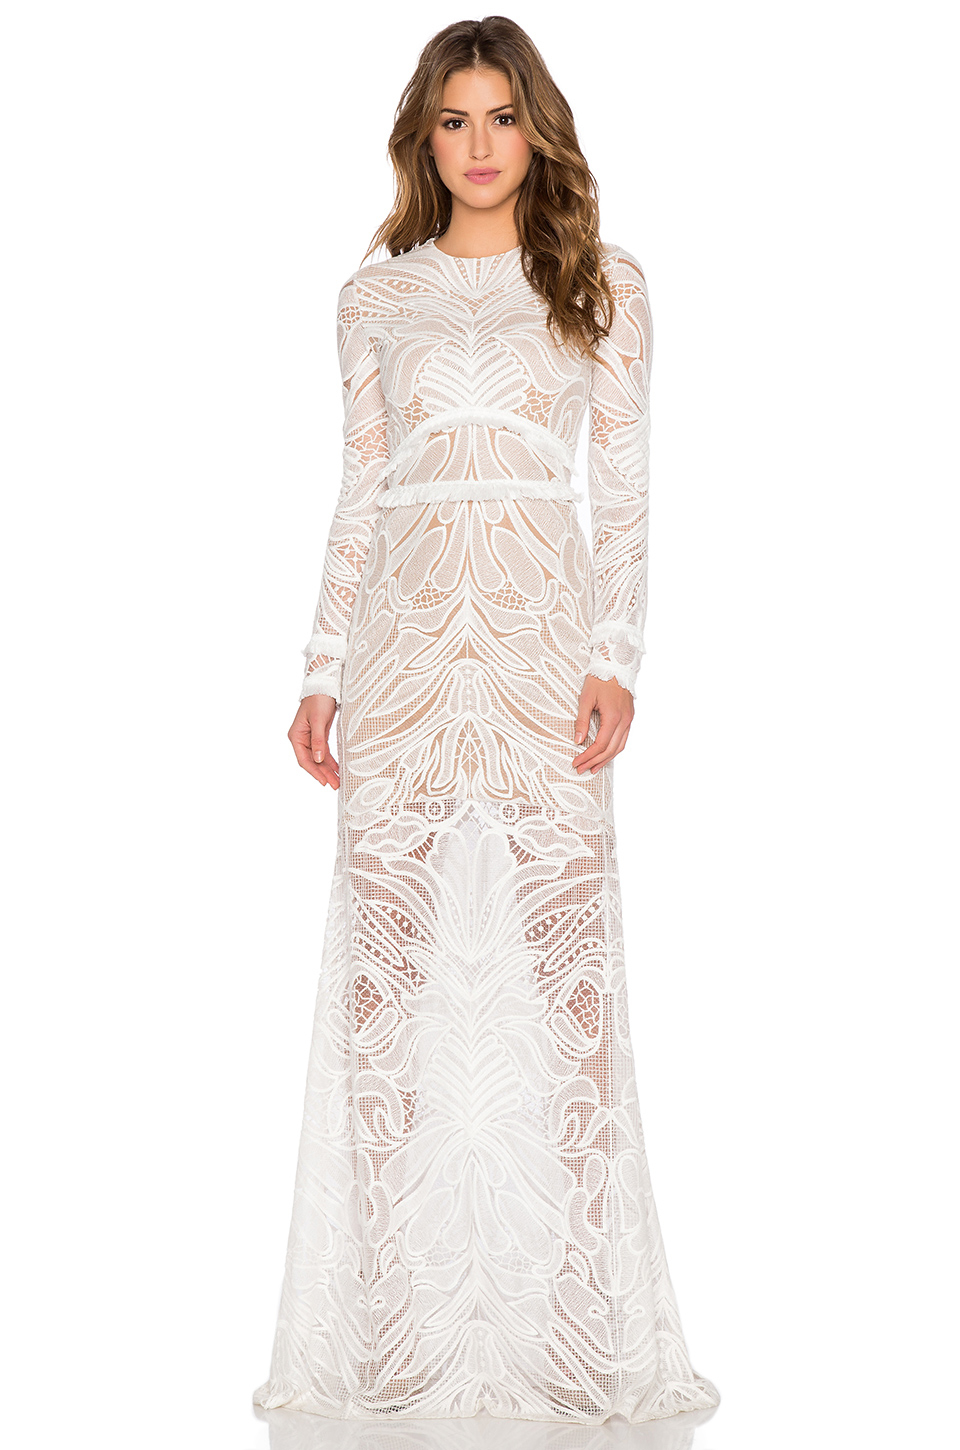 Alexis Vice Lace Maxi Dress in White | Lyst